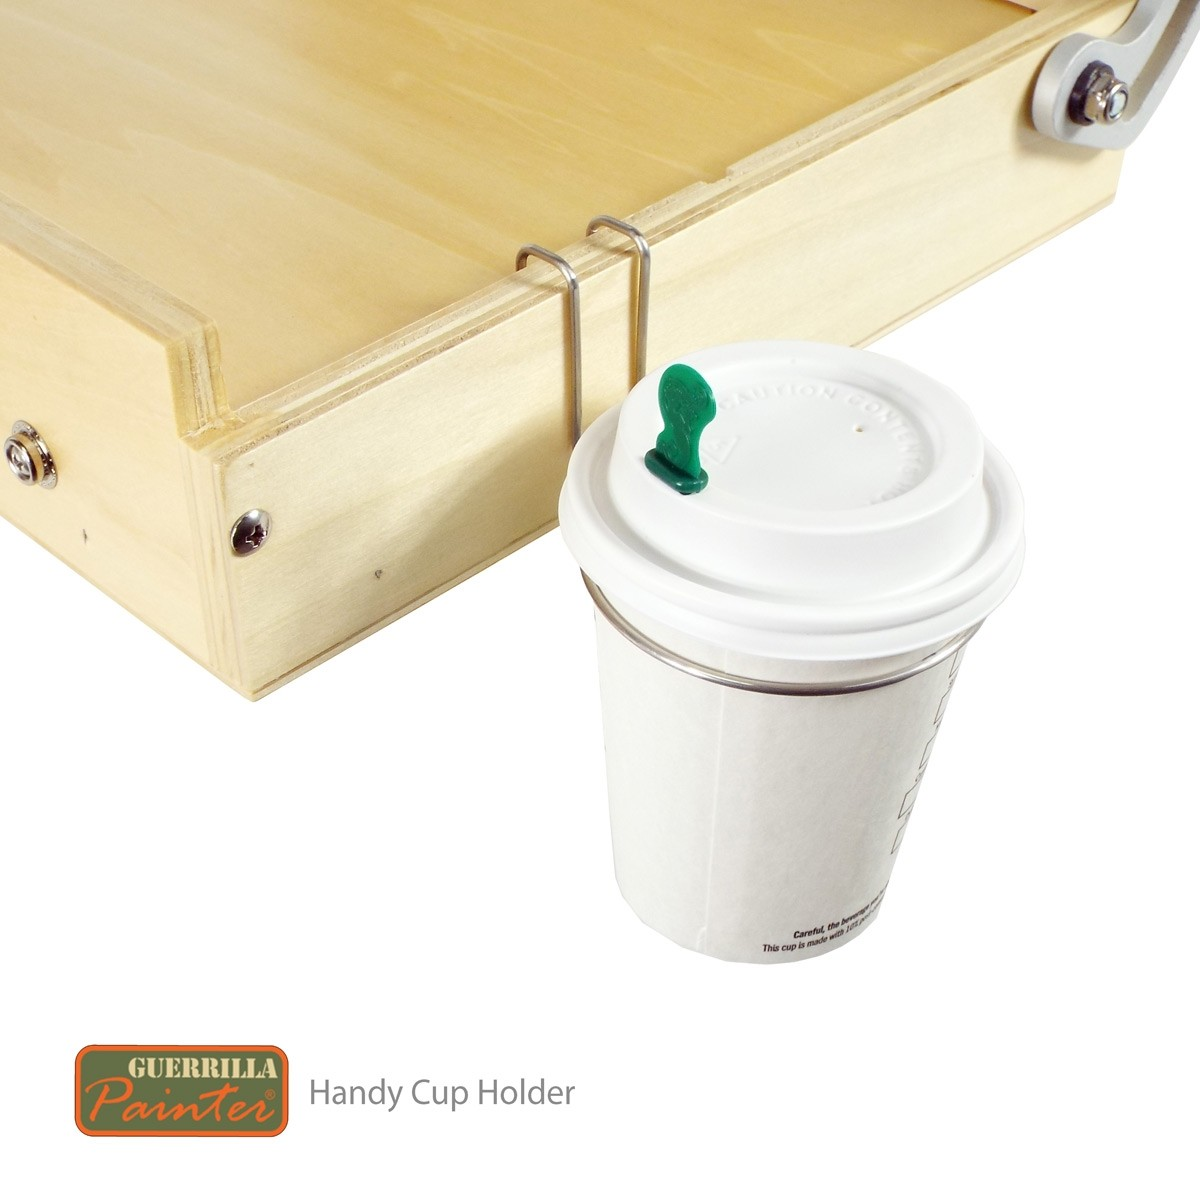 Guerrilla Painter Handy Cup Holder